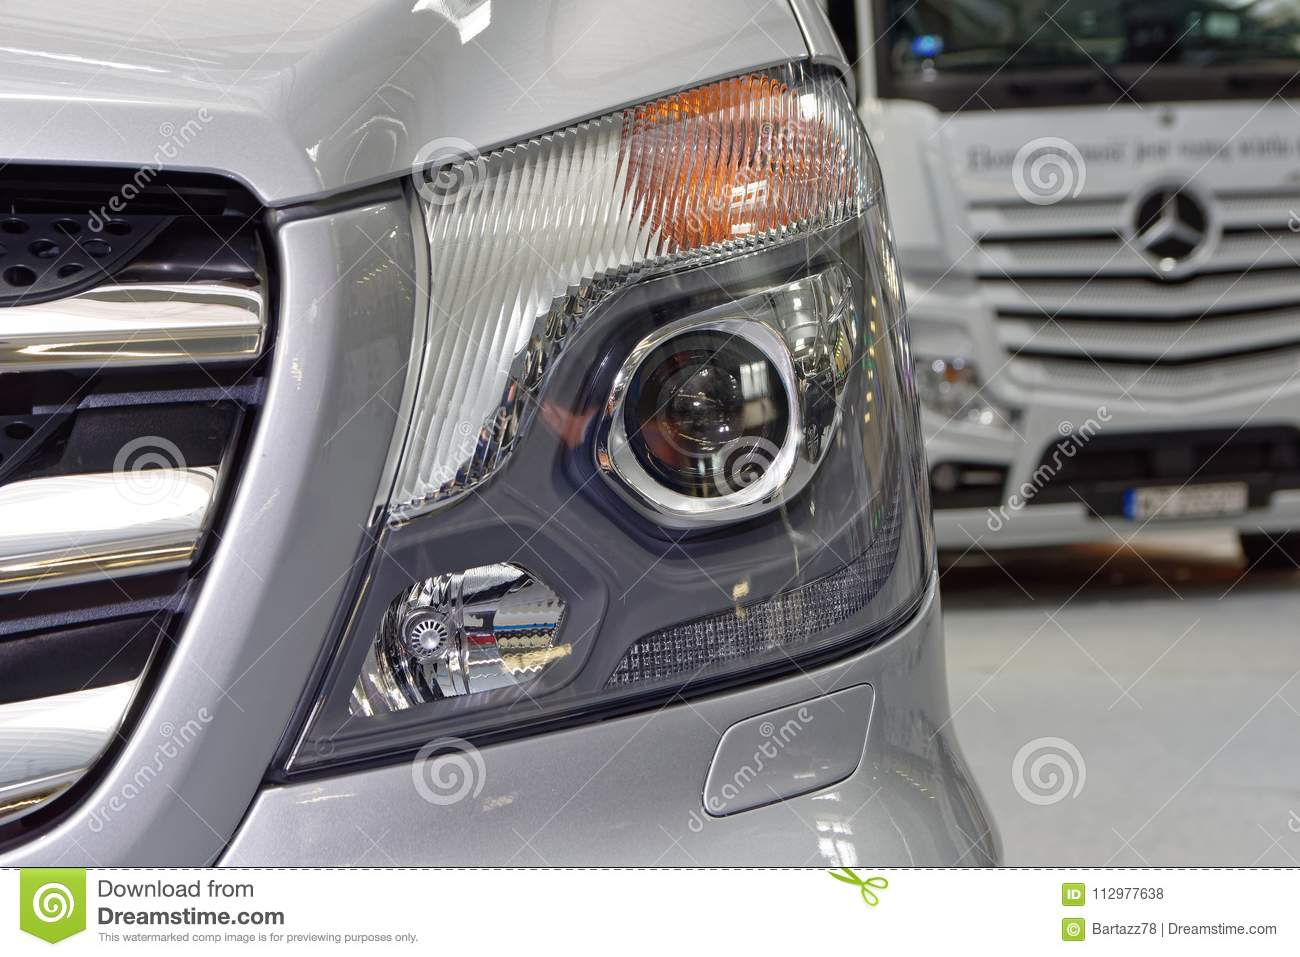 Modern and stylish silver front headlight